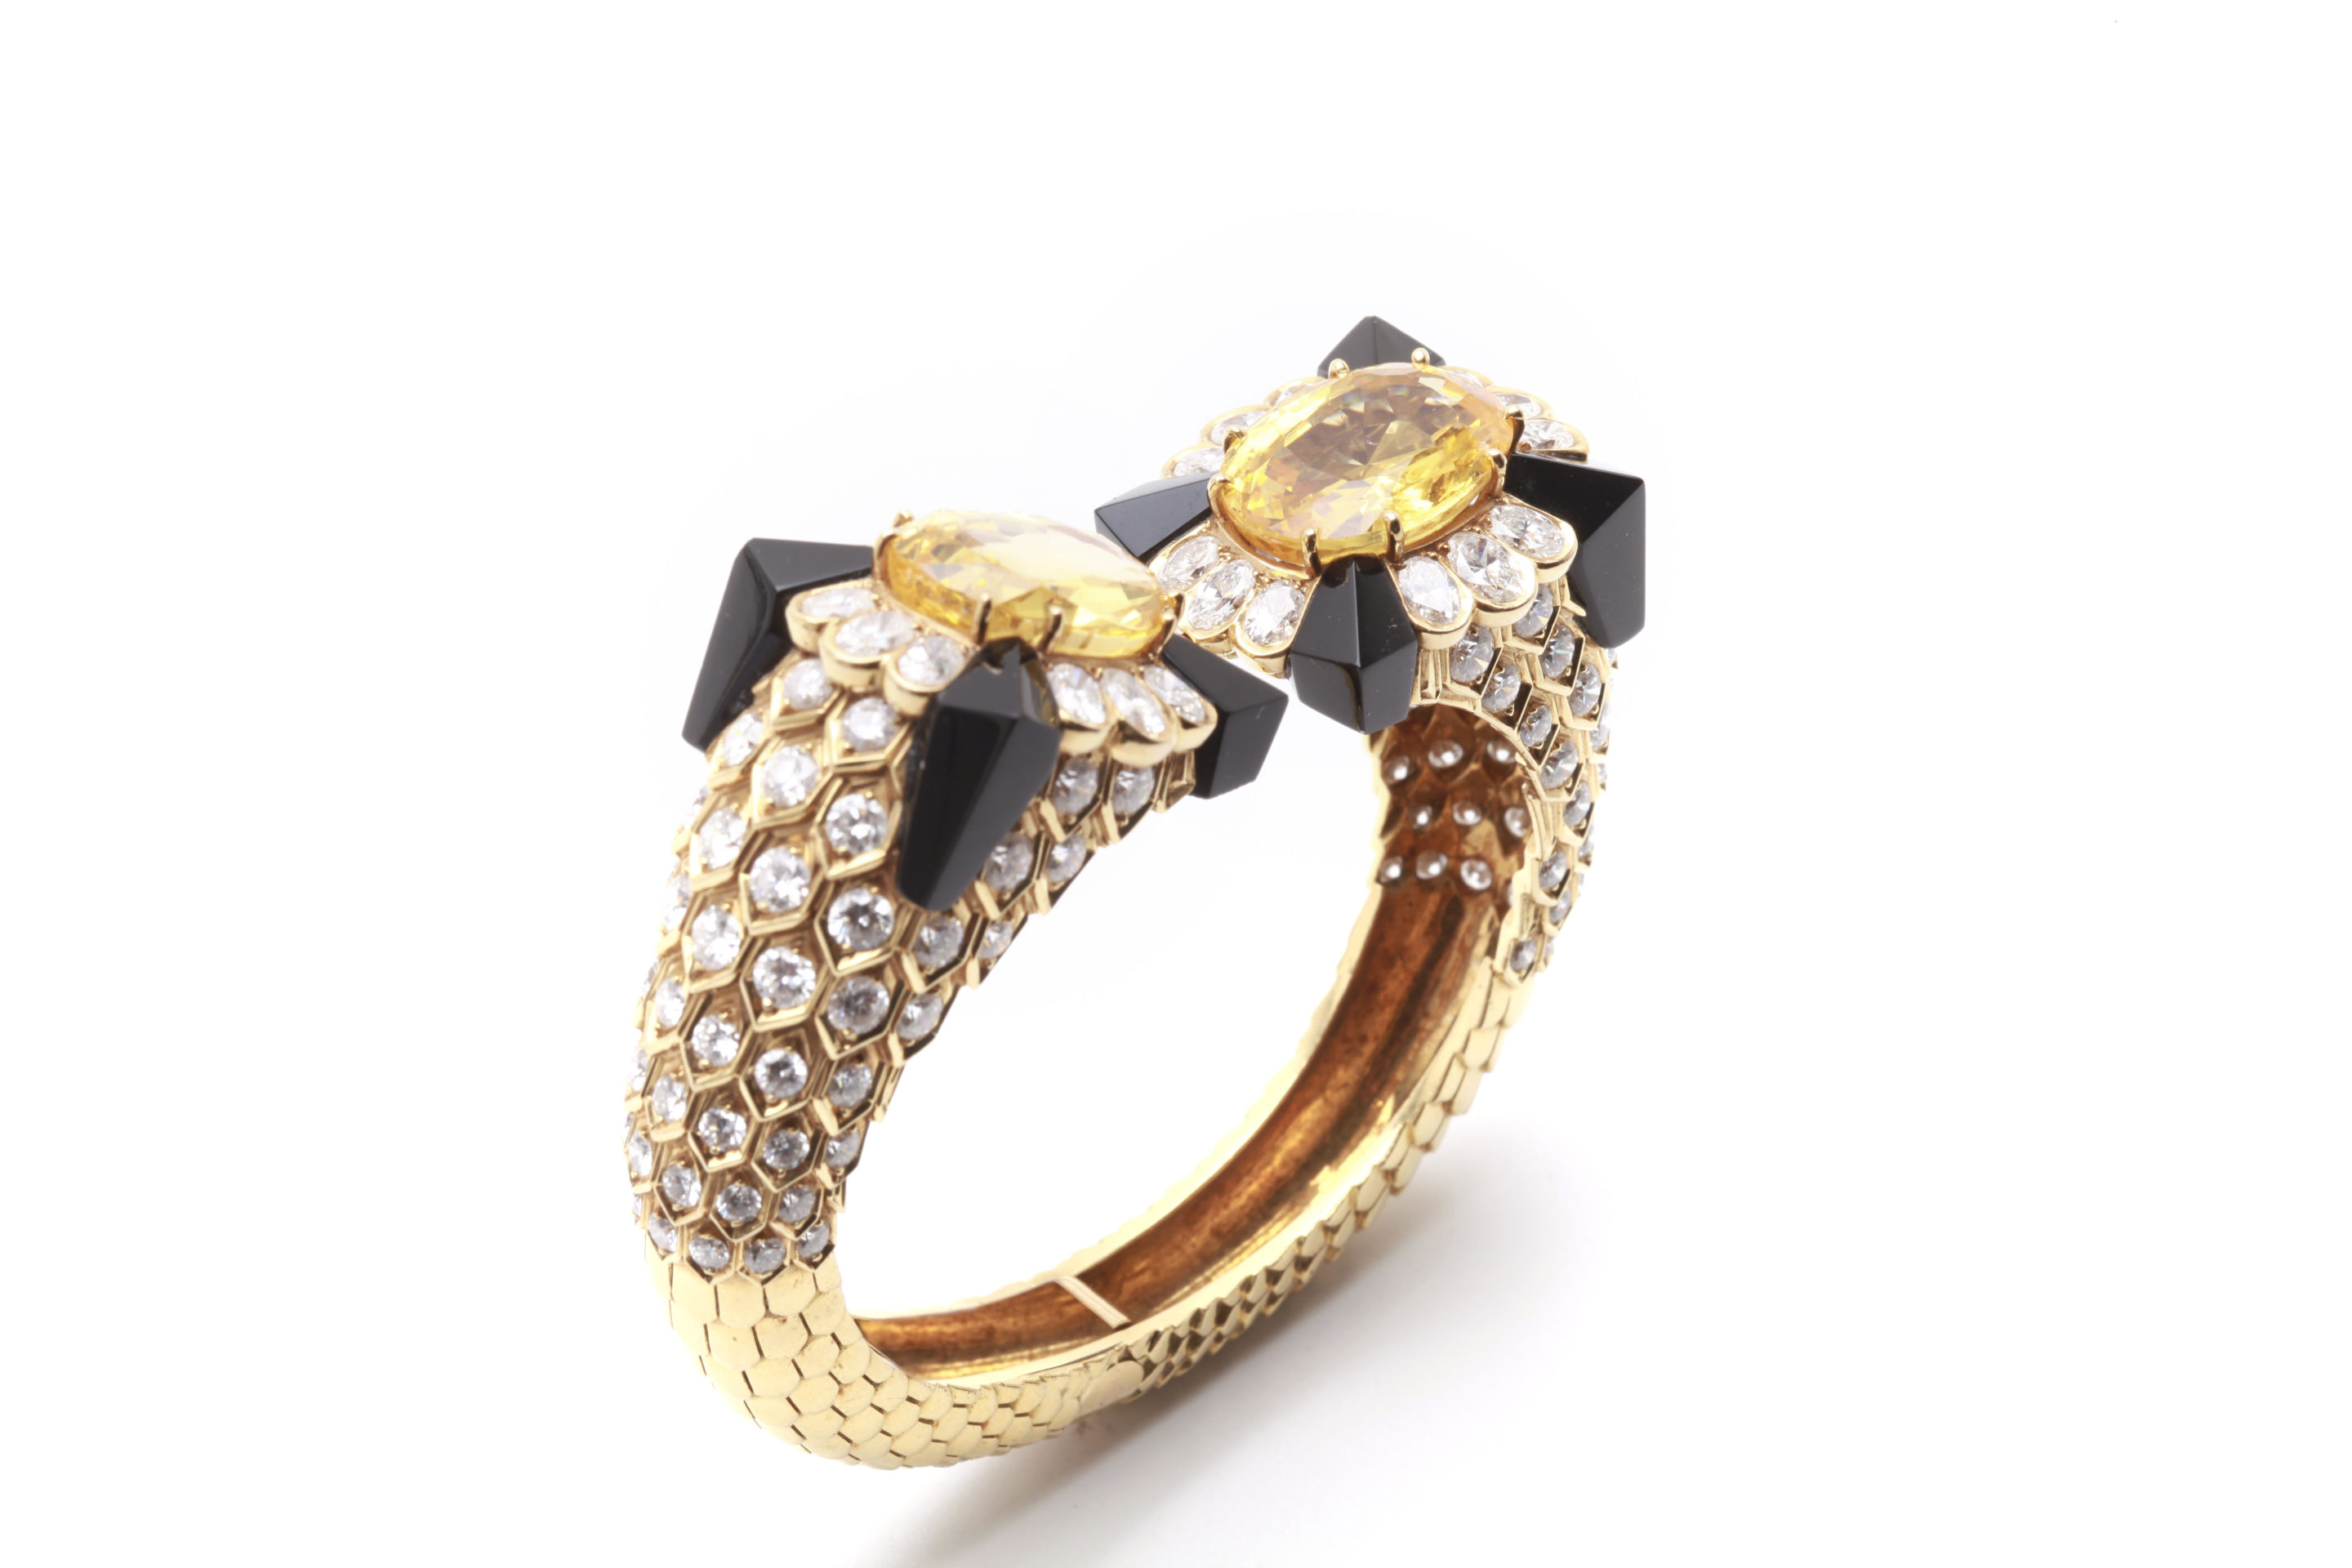 black ring wedding starburst rings onyx colette moda operandi large jewelry llc signet loading by